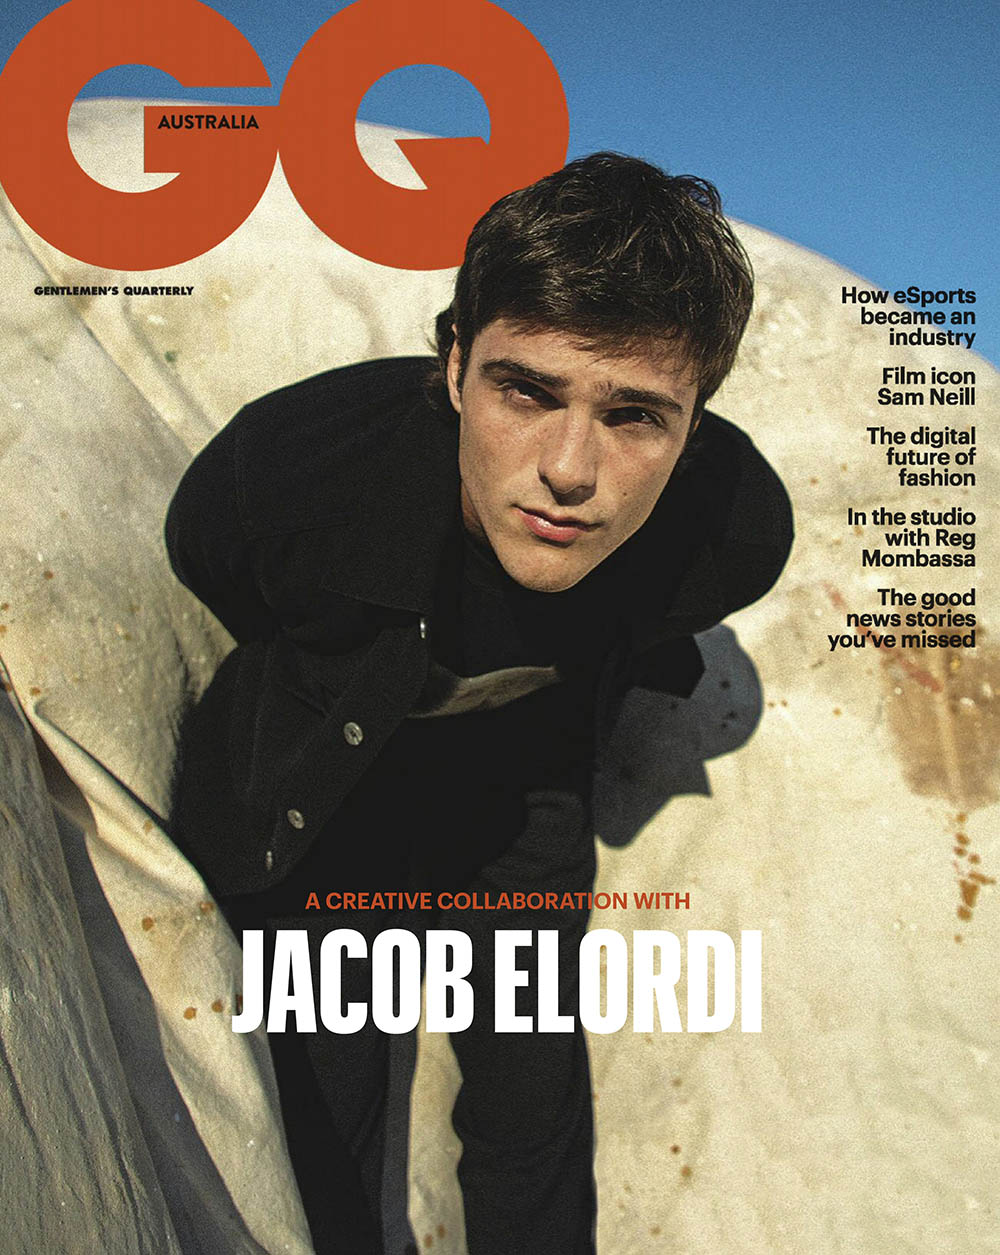 Jacob Elordi covers GQ Australia July August 2020 by Isabella Elordi